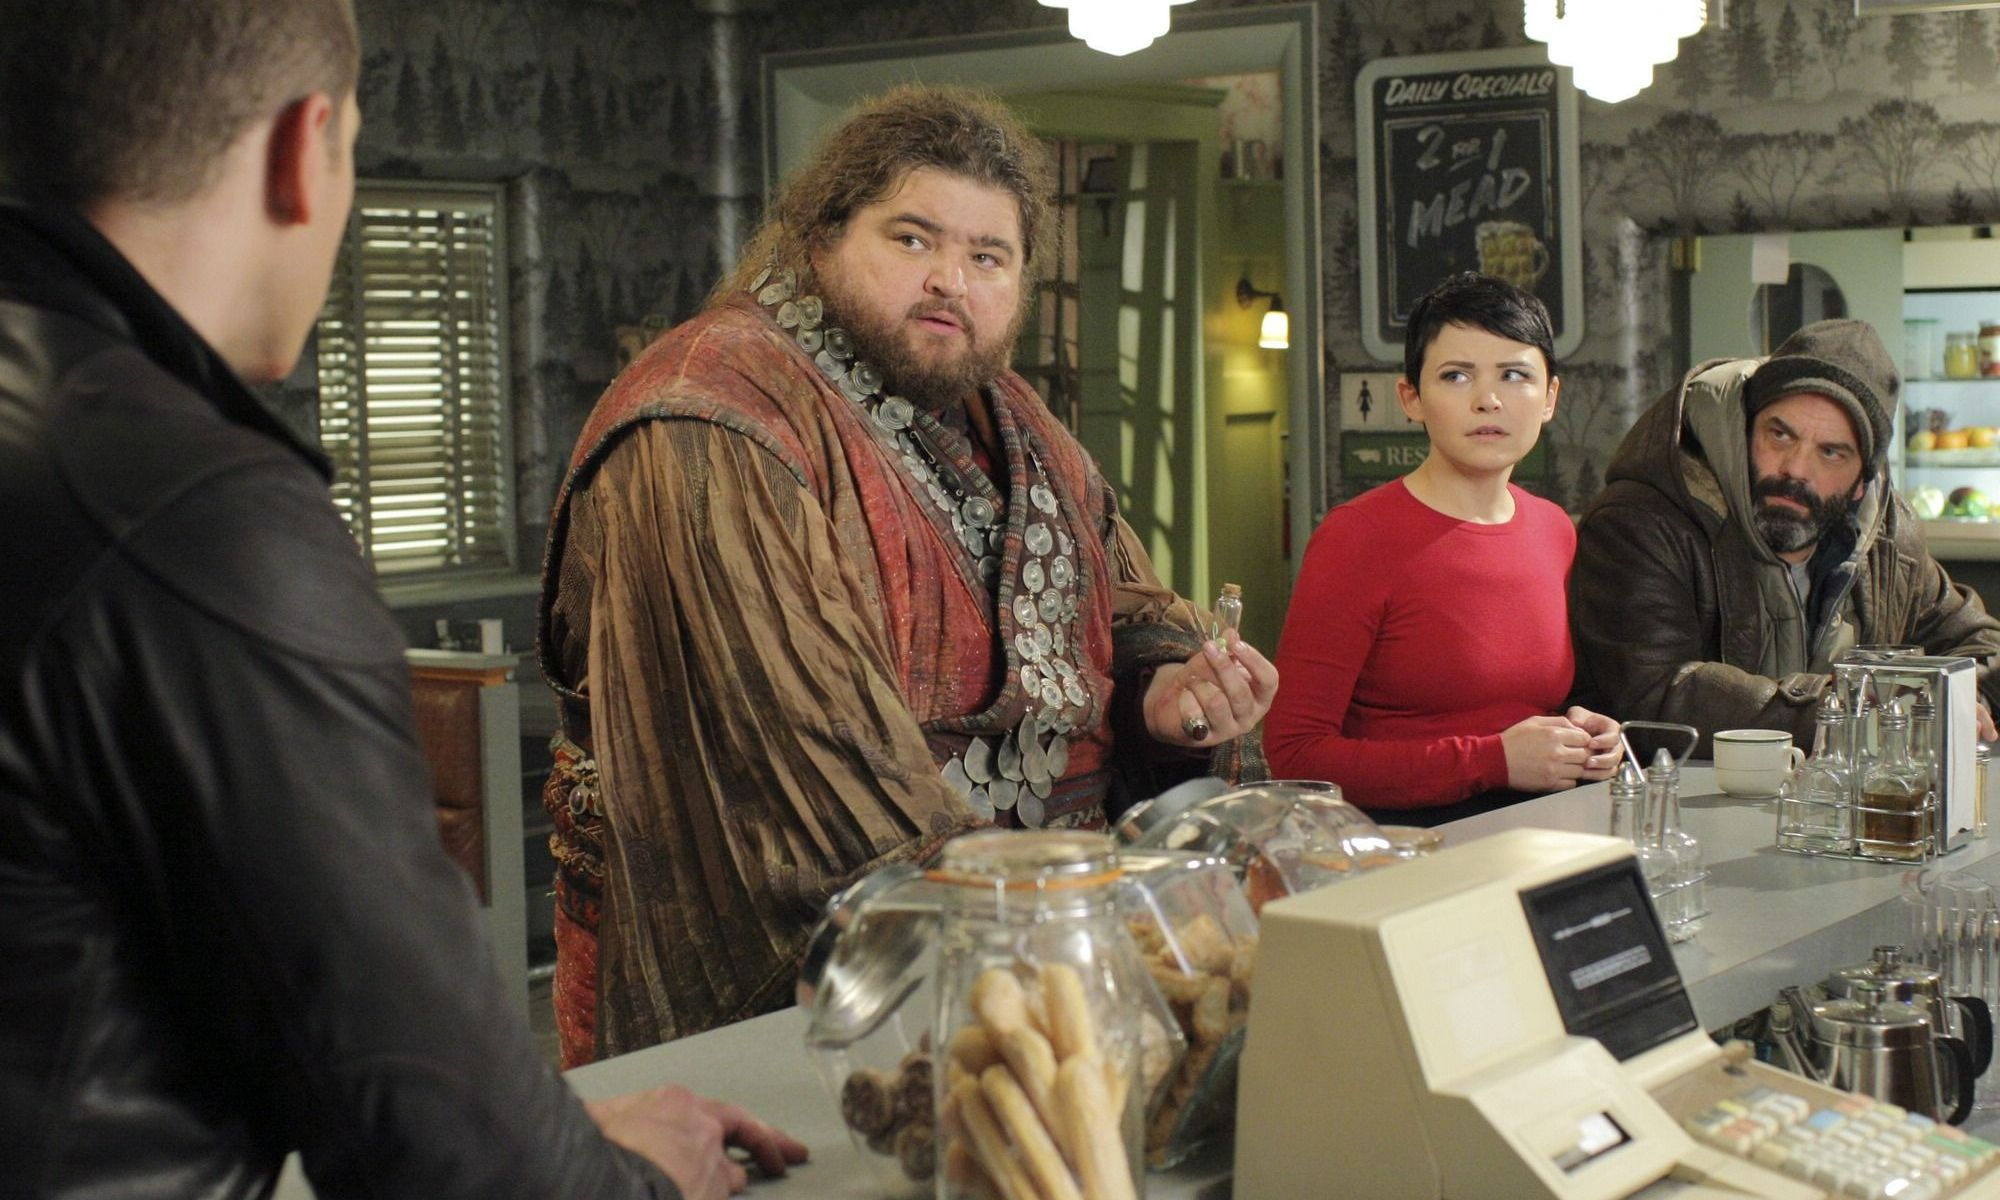 Tiny is welcomed into Storybrooke